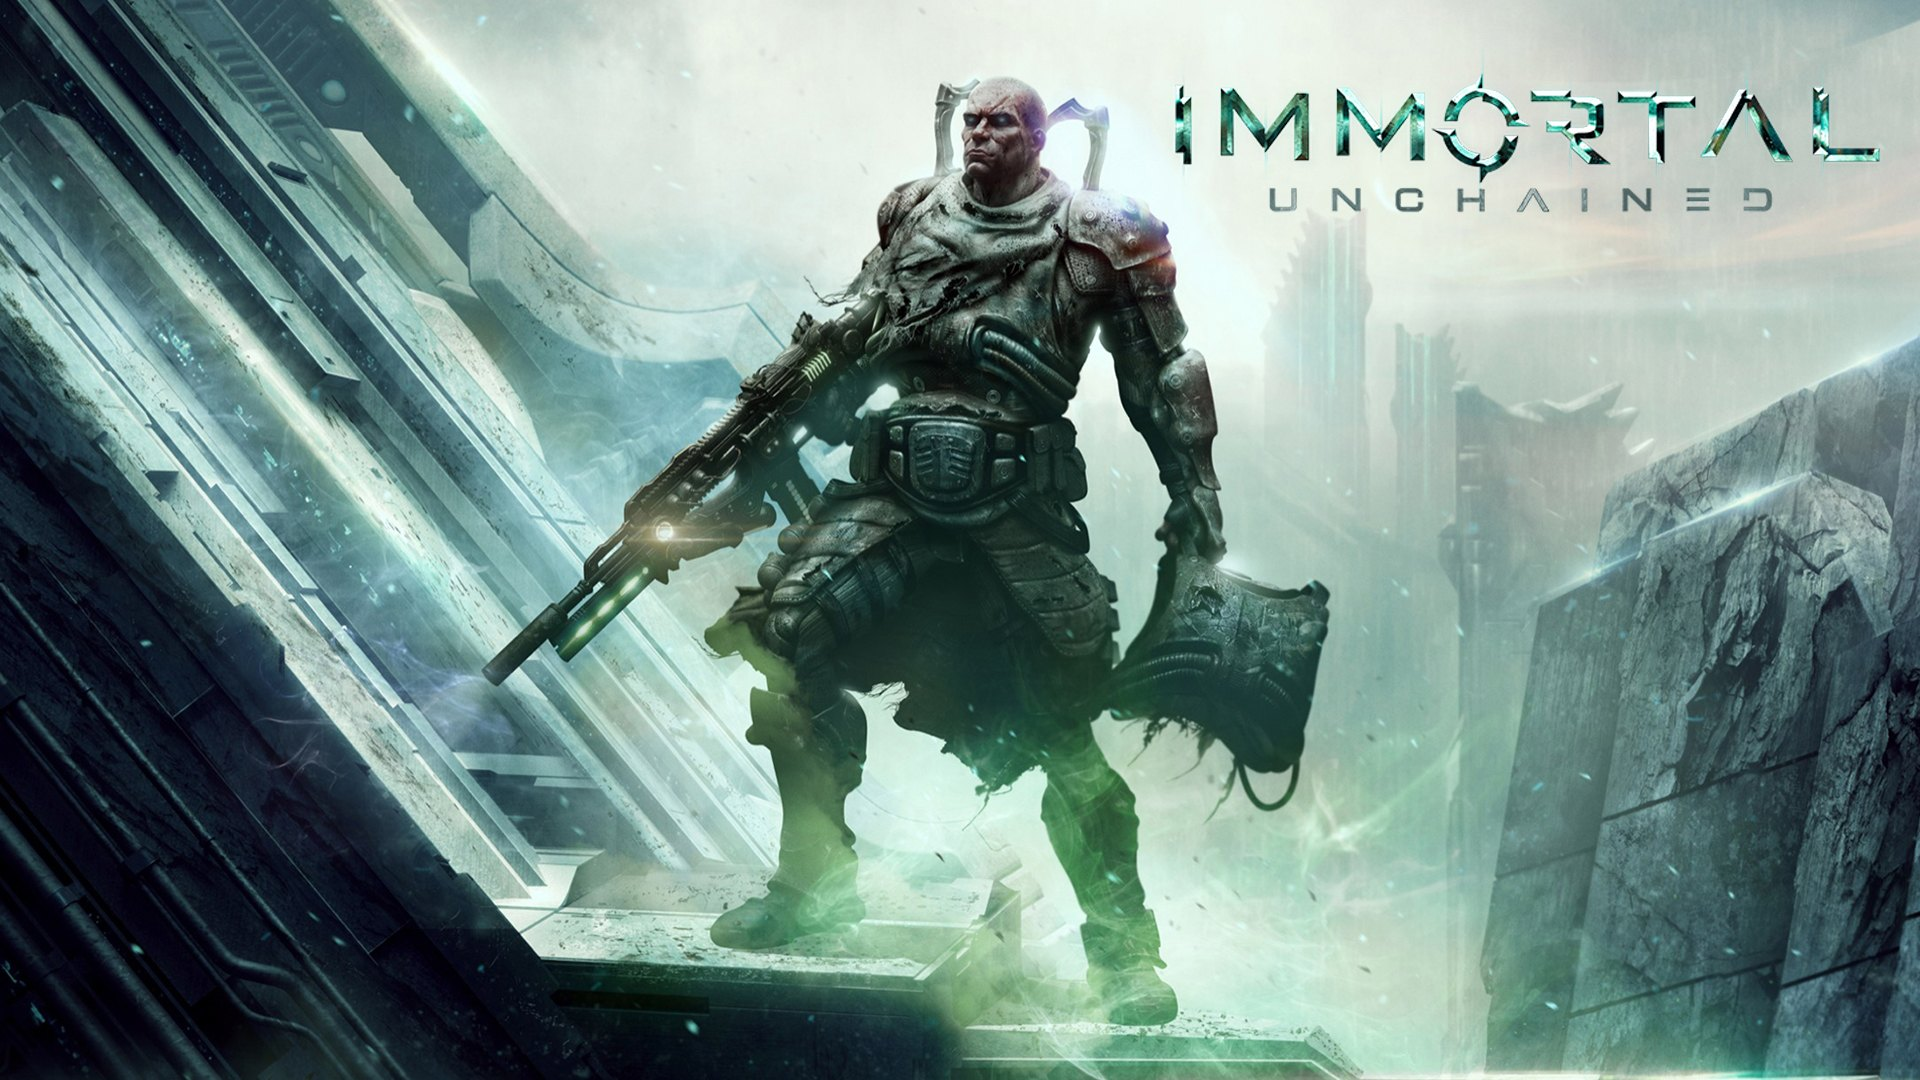 Download Immortal Unchained Storm Breaker-CODEX + Update 18-CODEX